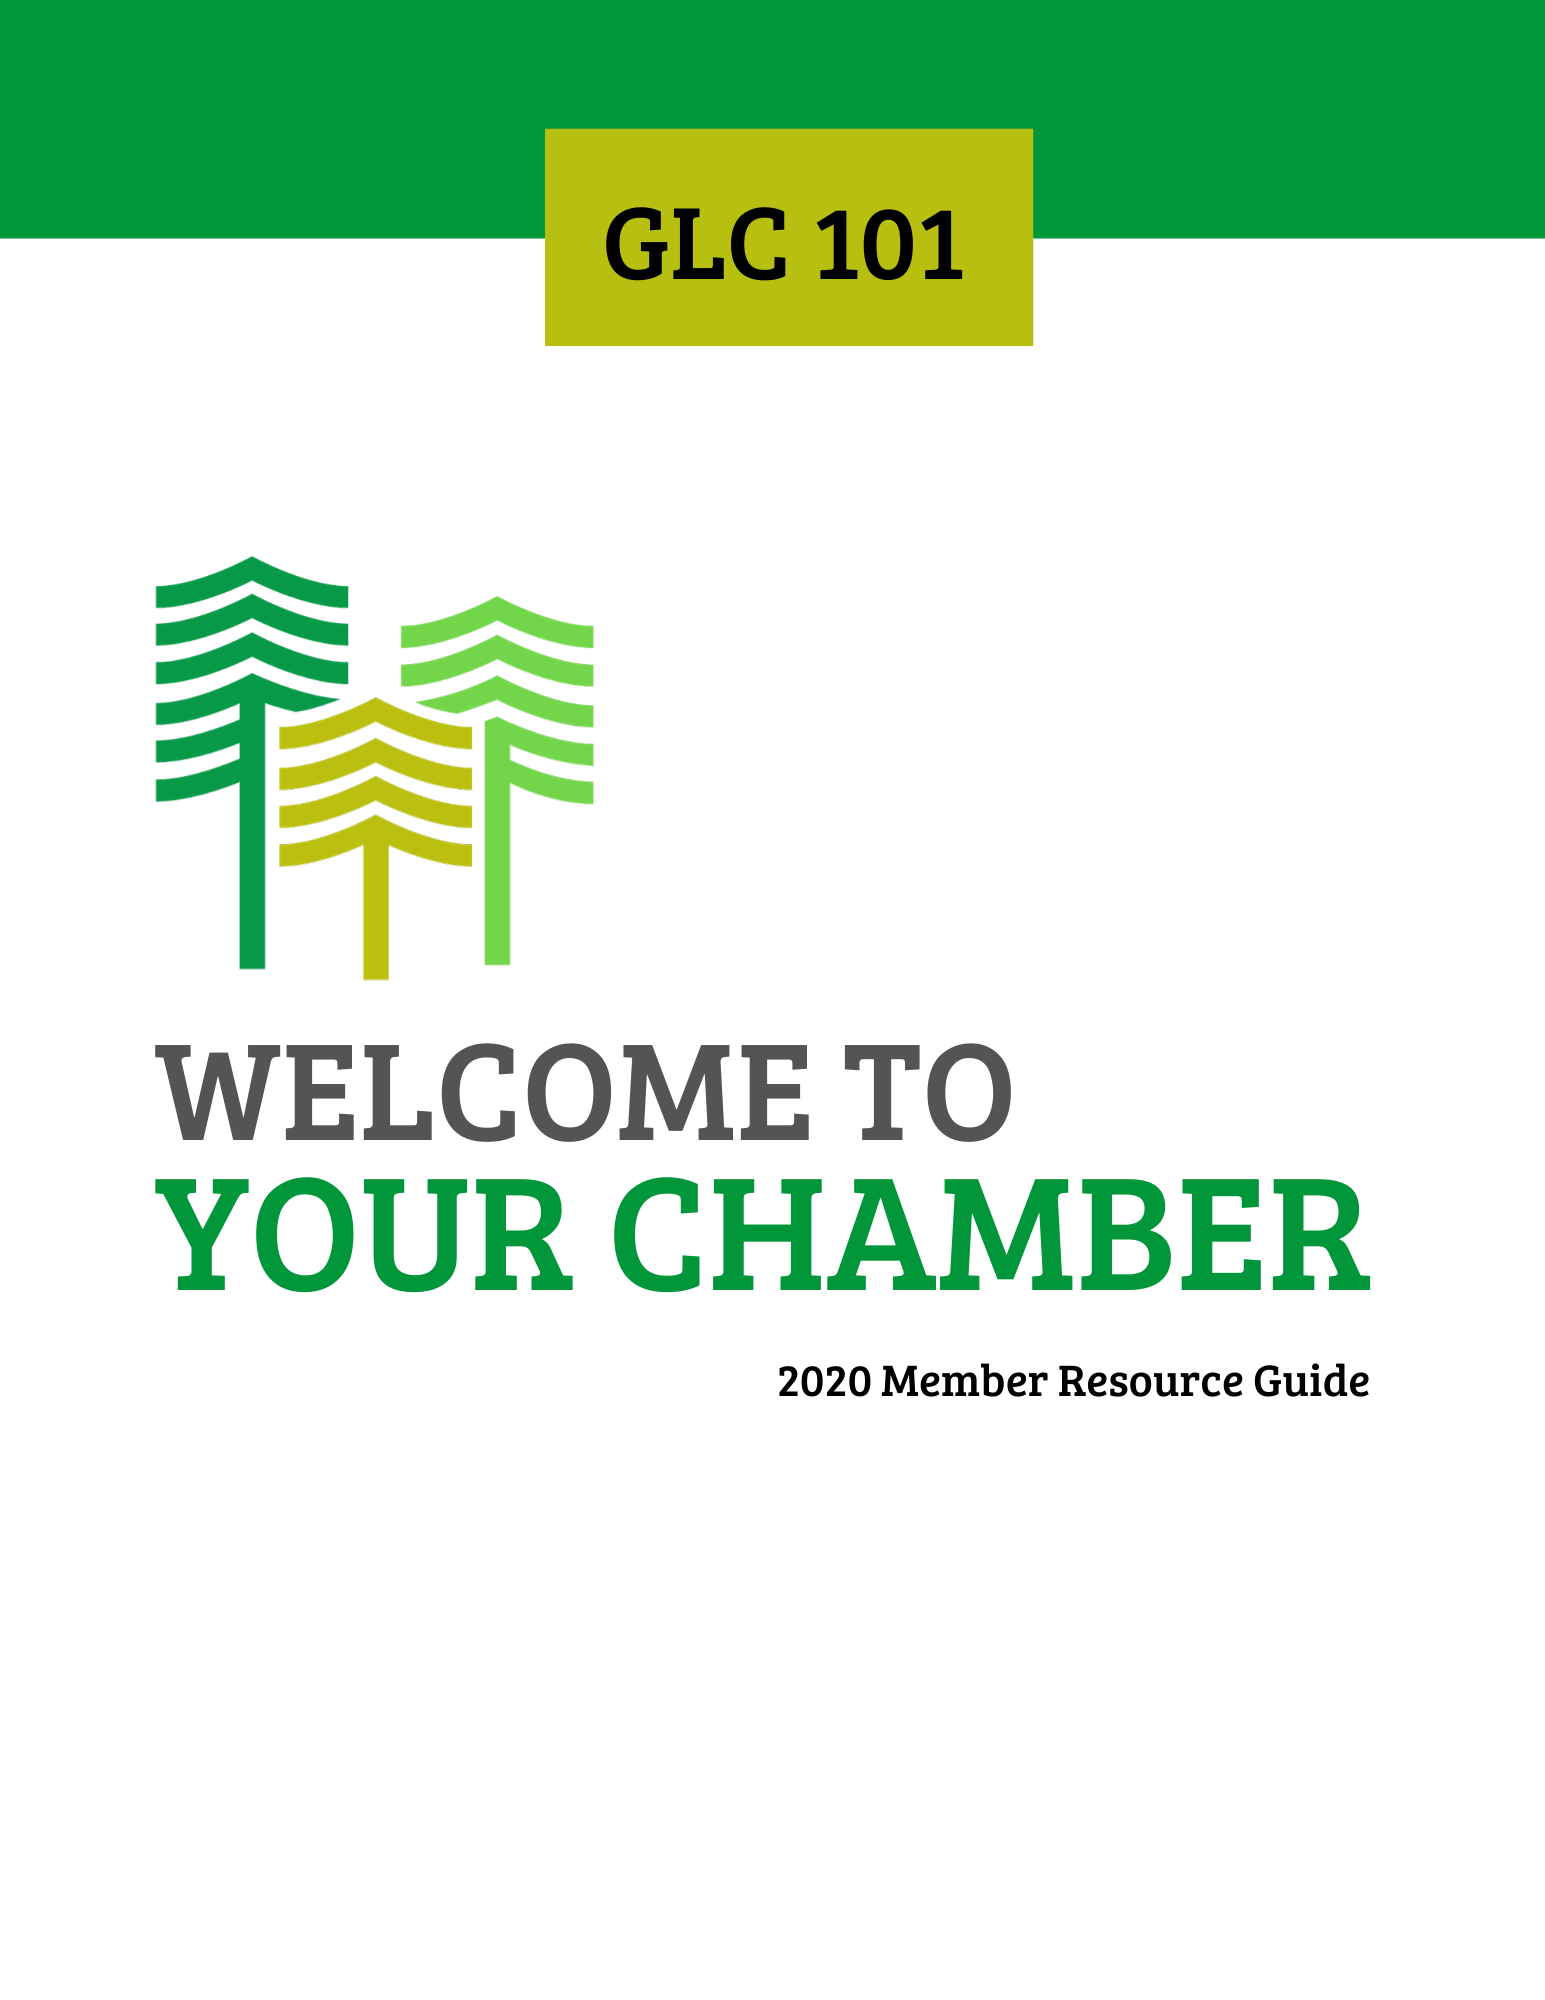 GLC-101-Welcome-to-your-chamber..png